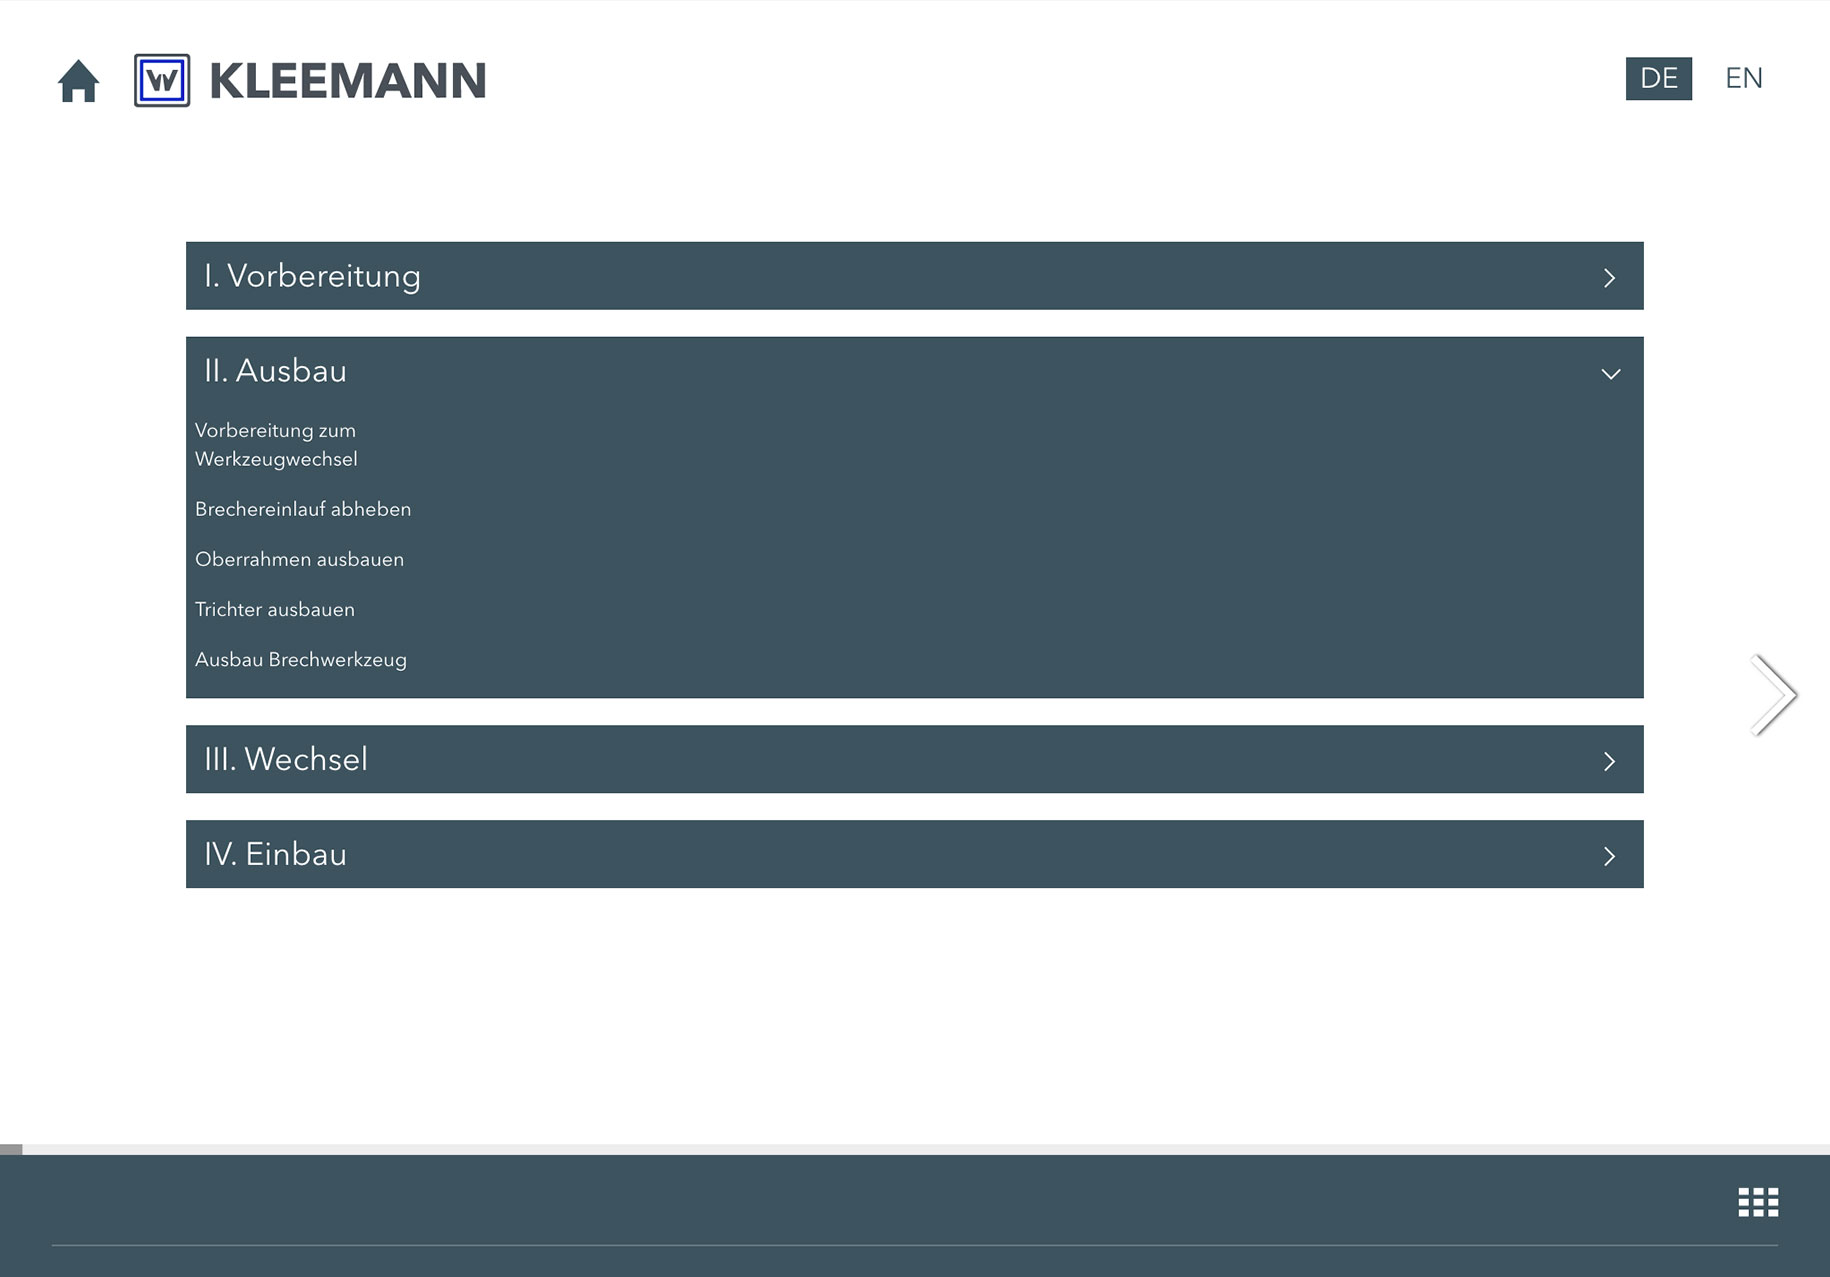 KLEEMANN Video Training Tool Contents